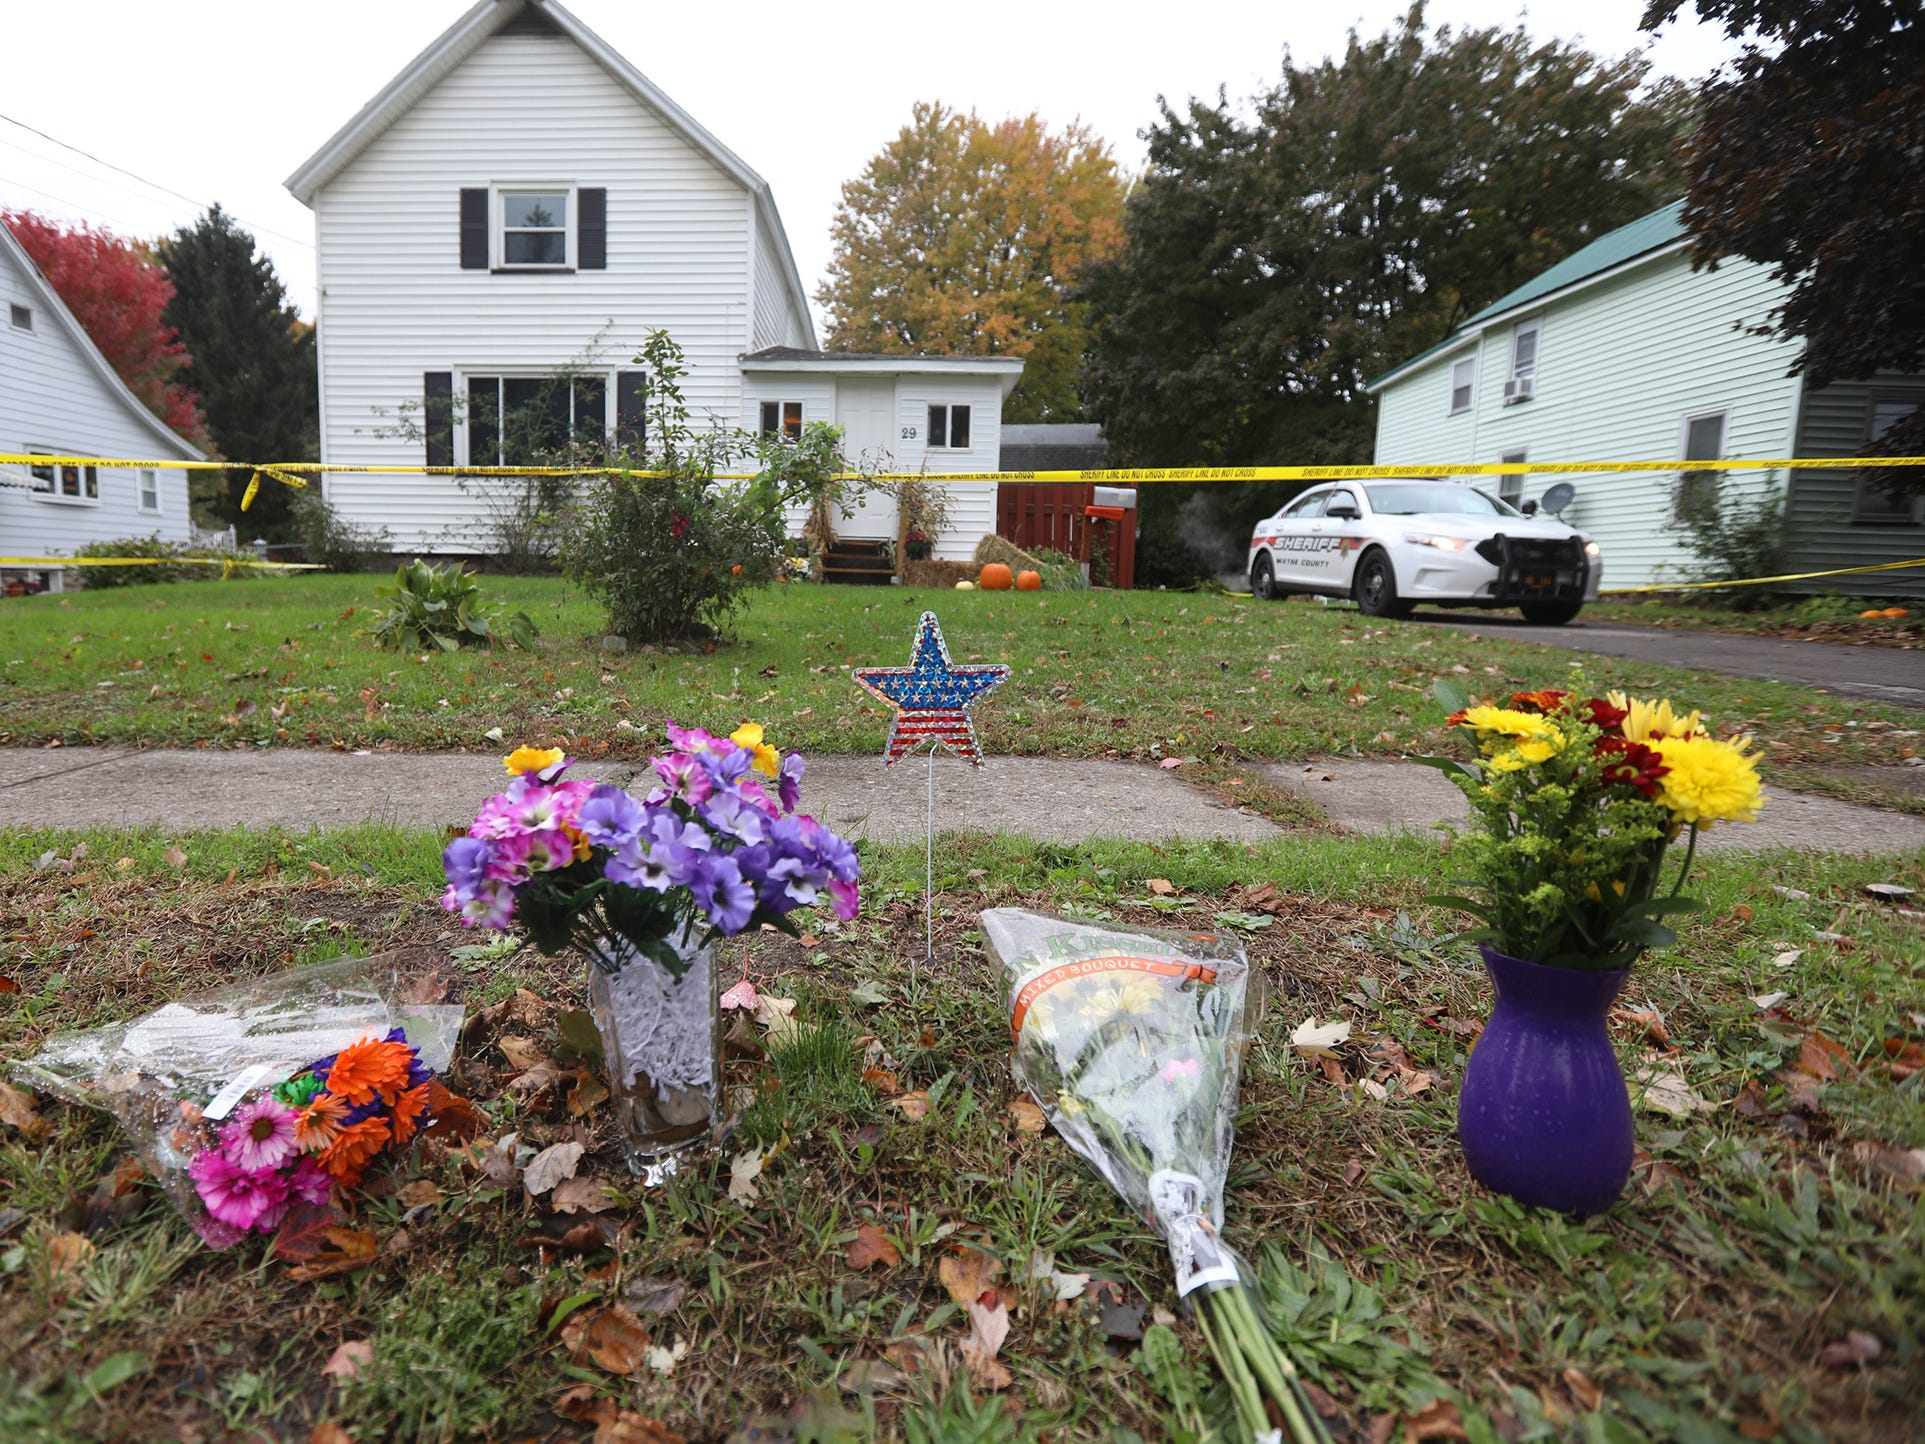 Joshua Niles and Amber Washburn were killed outside their home Oct. 22, 2018. Flowers were left outside their home several days later.